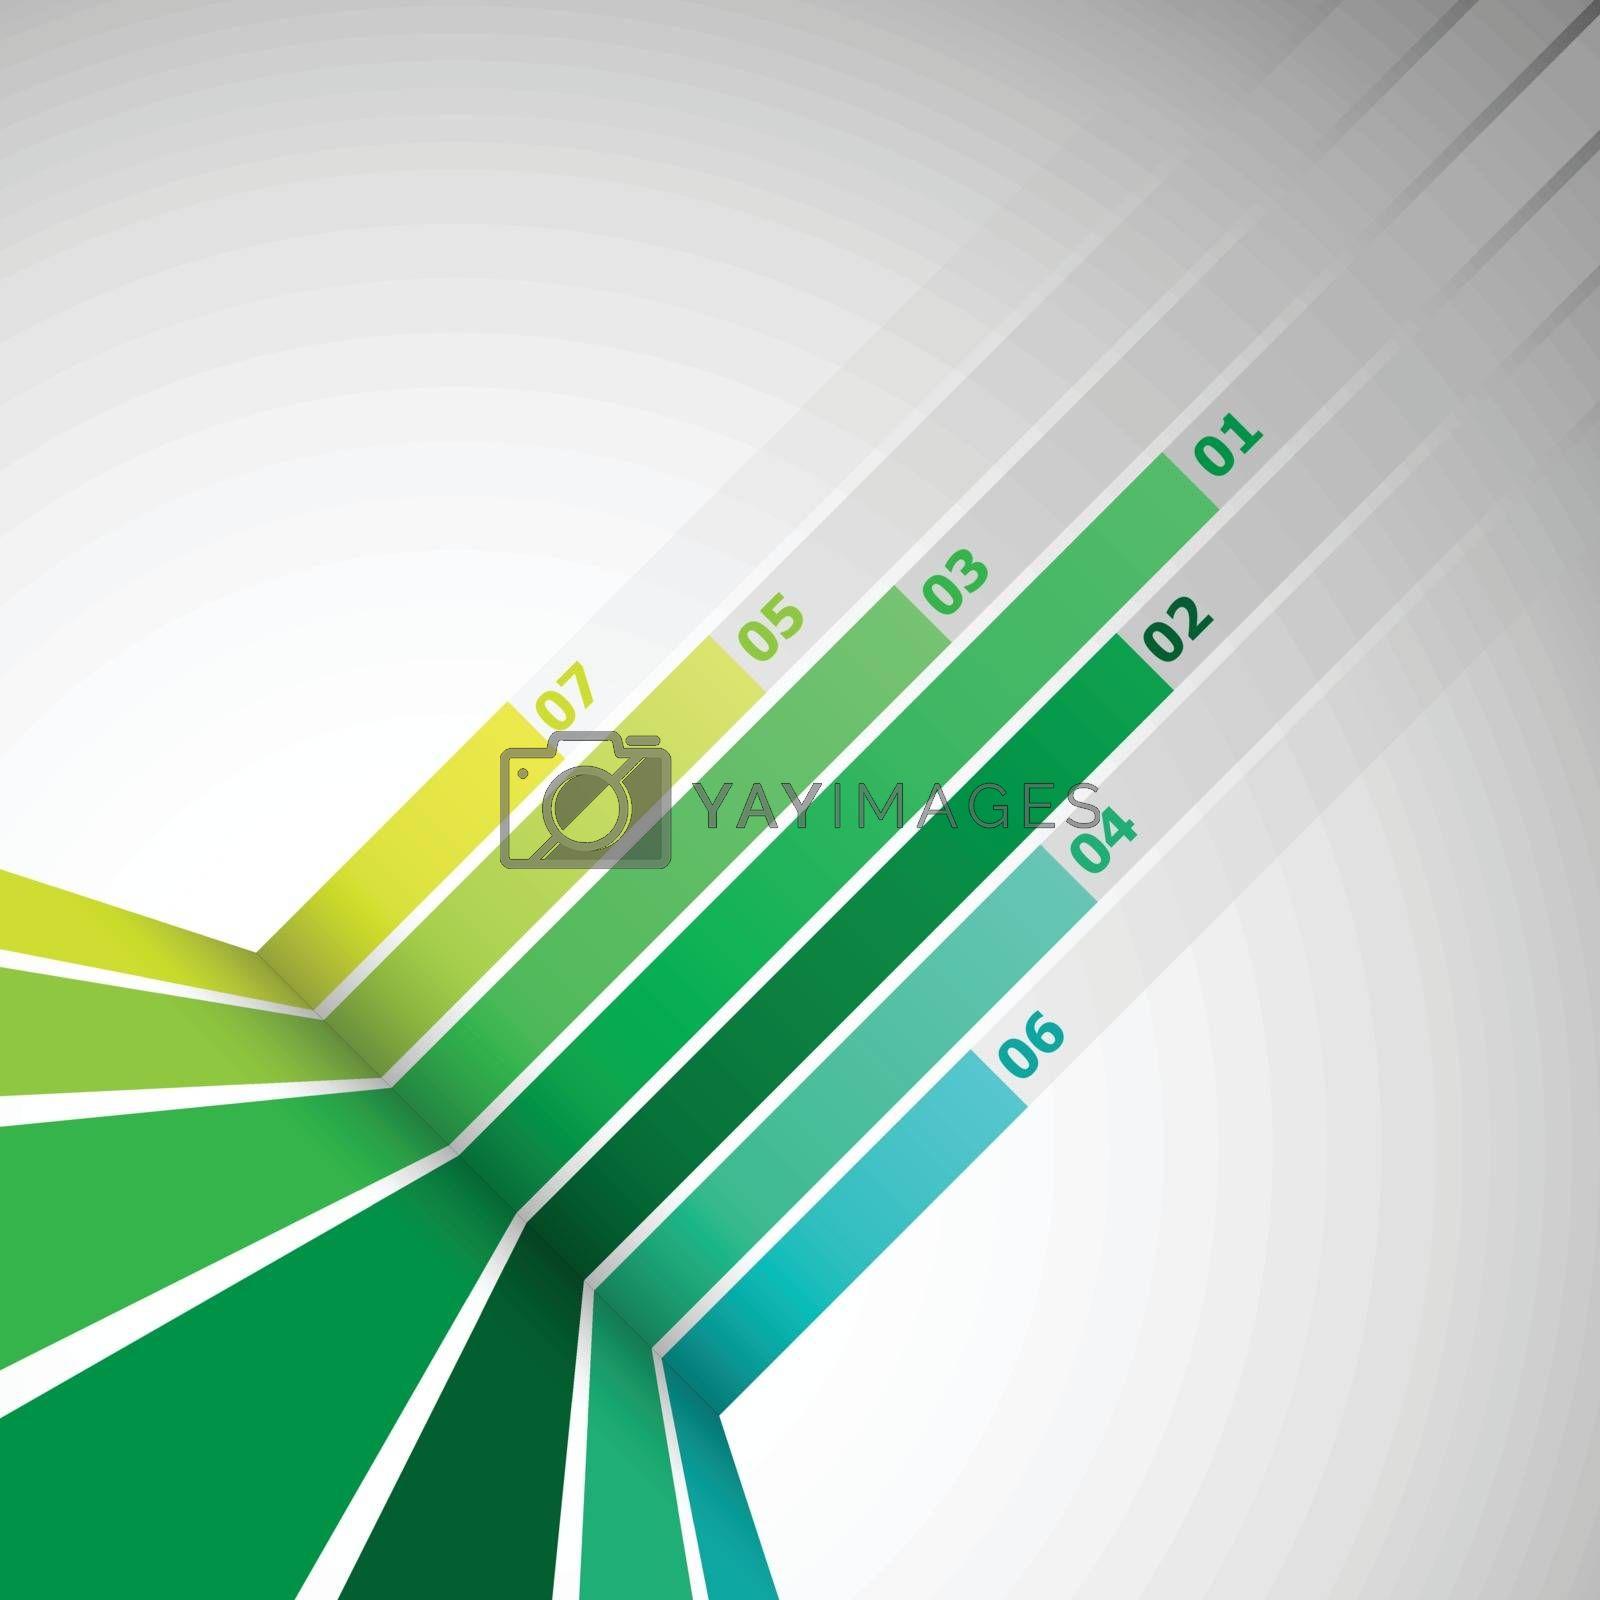 Abstract design element with green lines, stock vector